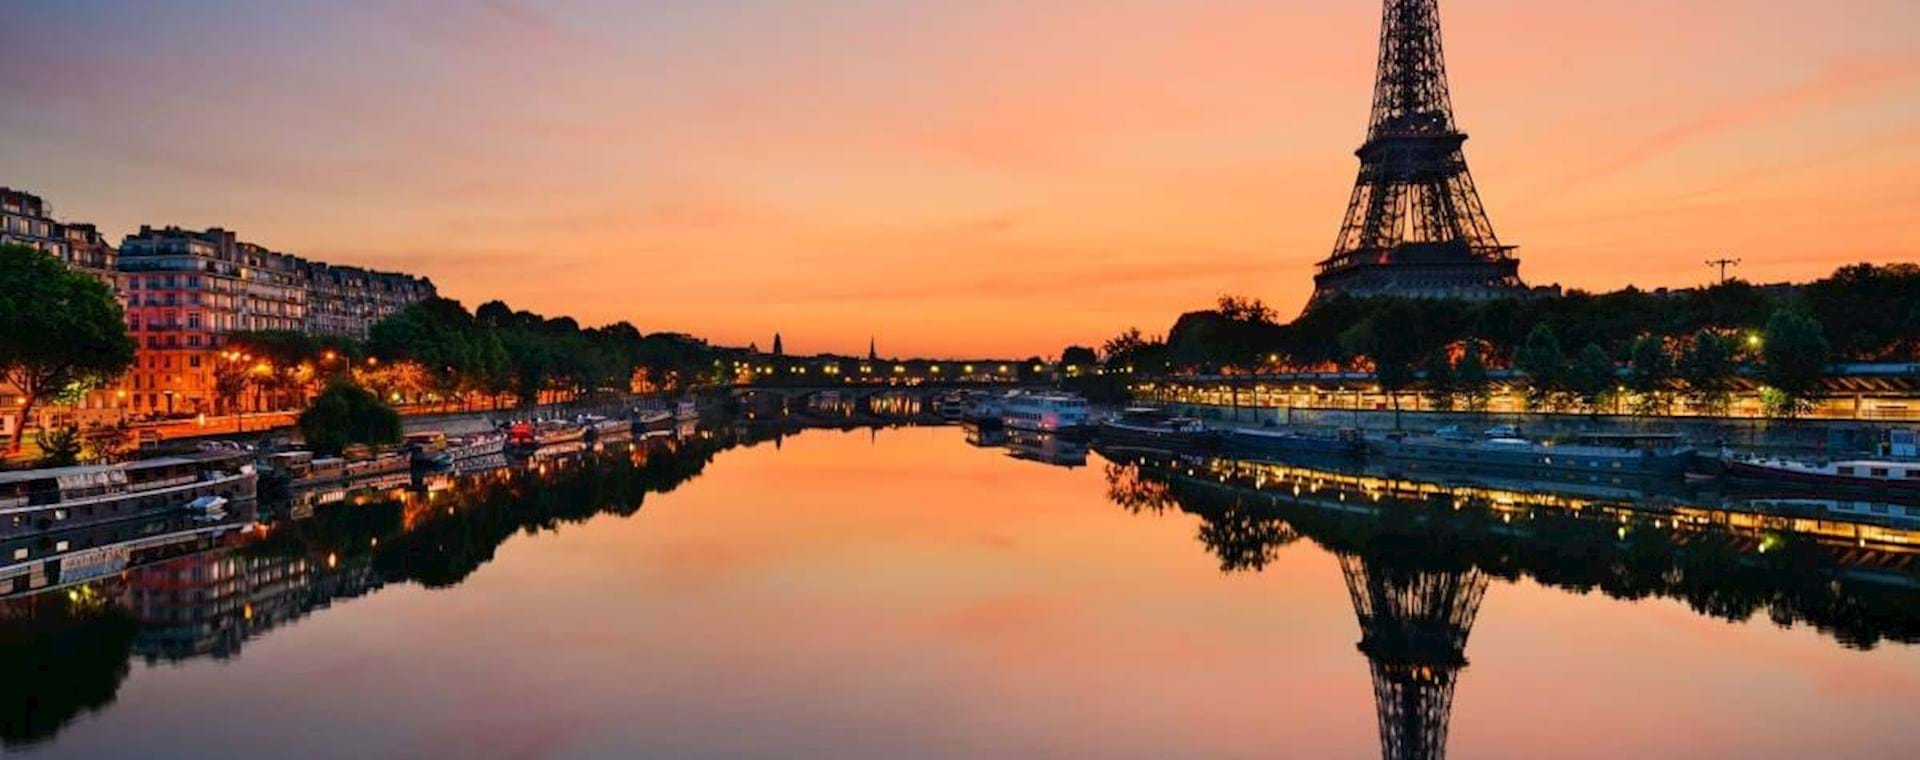 View of the Eiffel Tower at Sunset from the Cruise